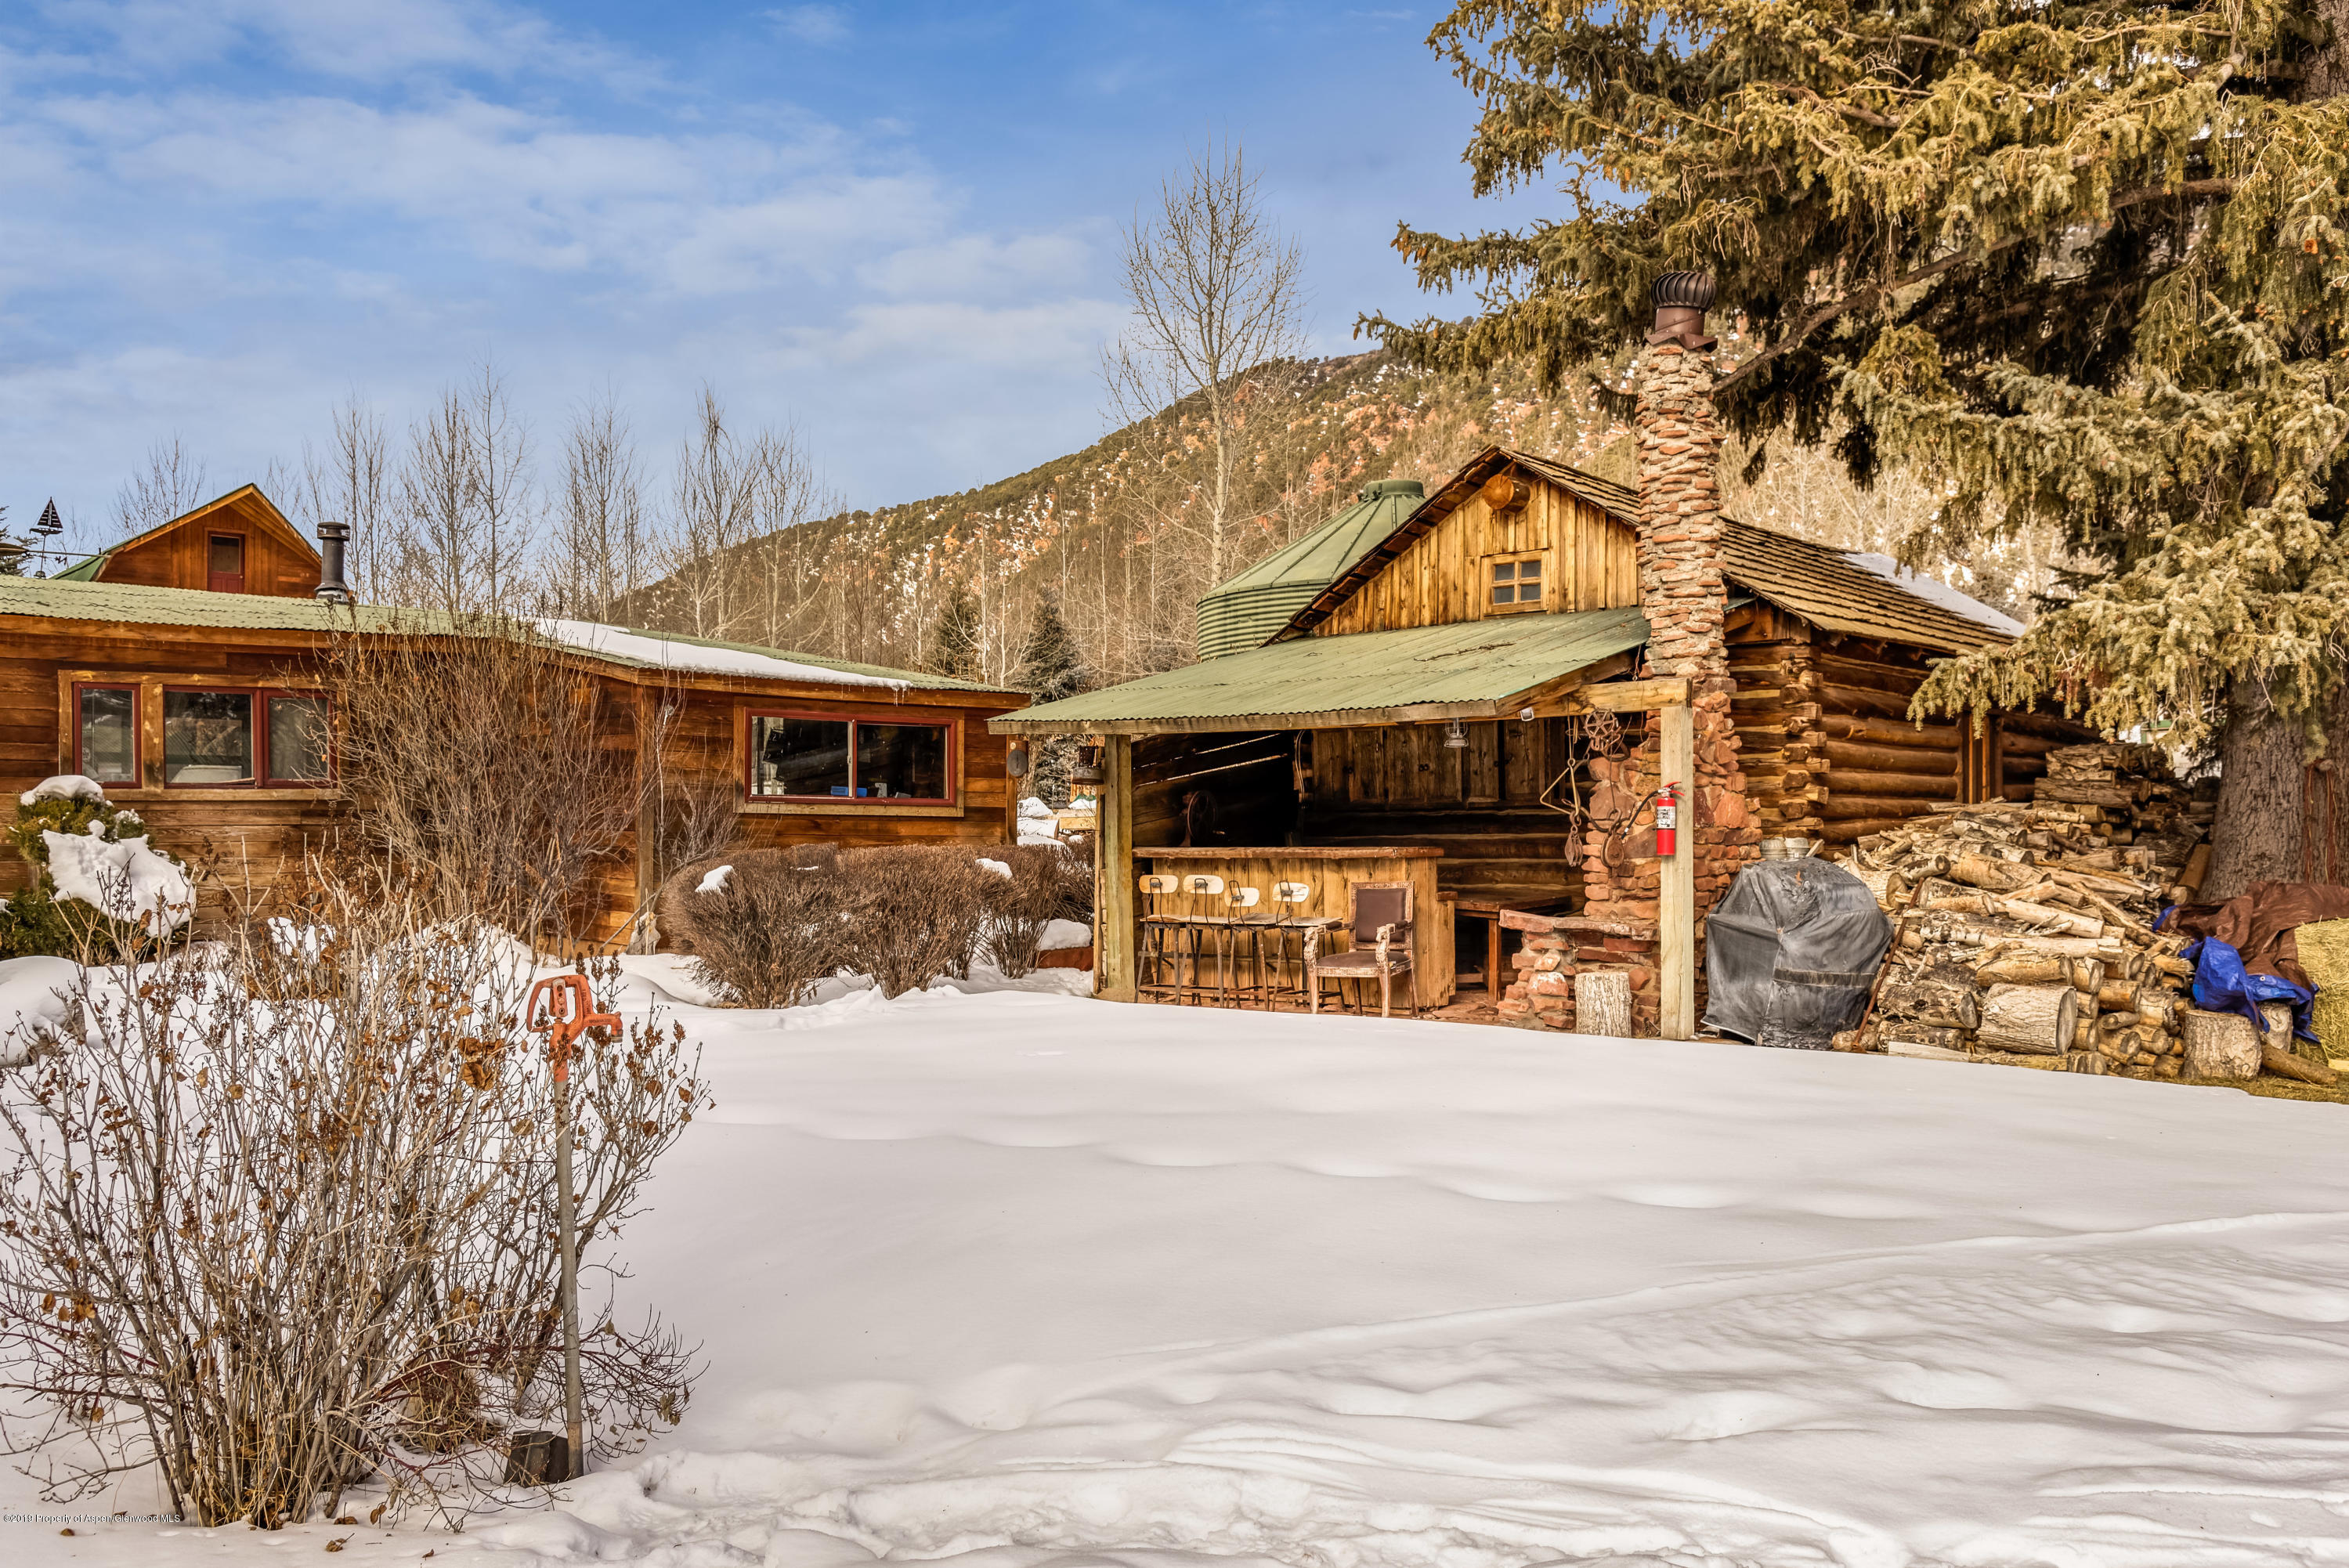 MLS# 135595 - 72 - 50 E River Ranch Road, Snowmass, CO 81654